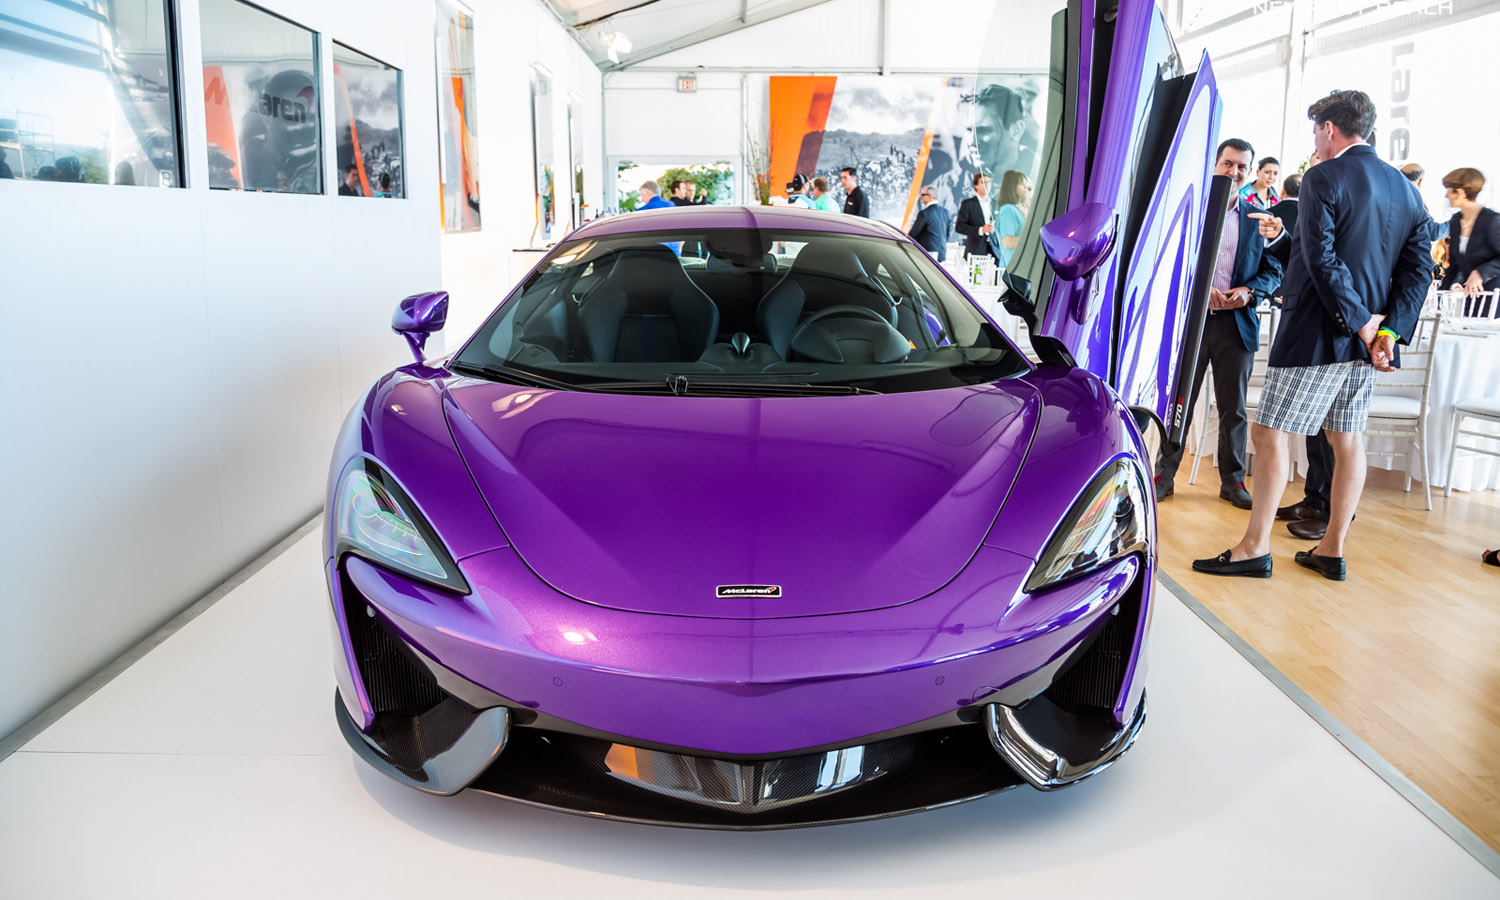 These 15 Cars Will Make You Fall in Love With the Color Purple